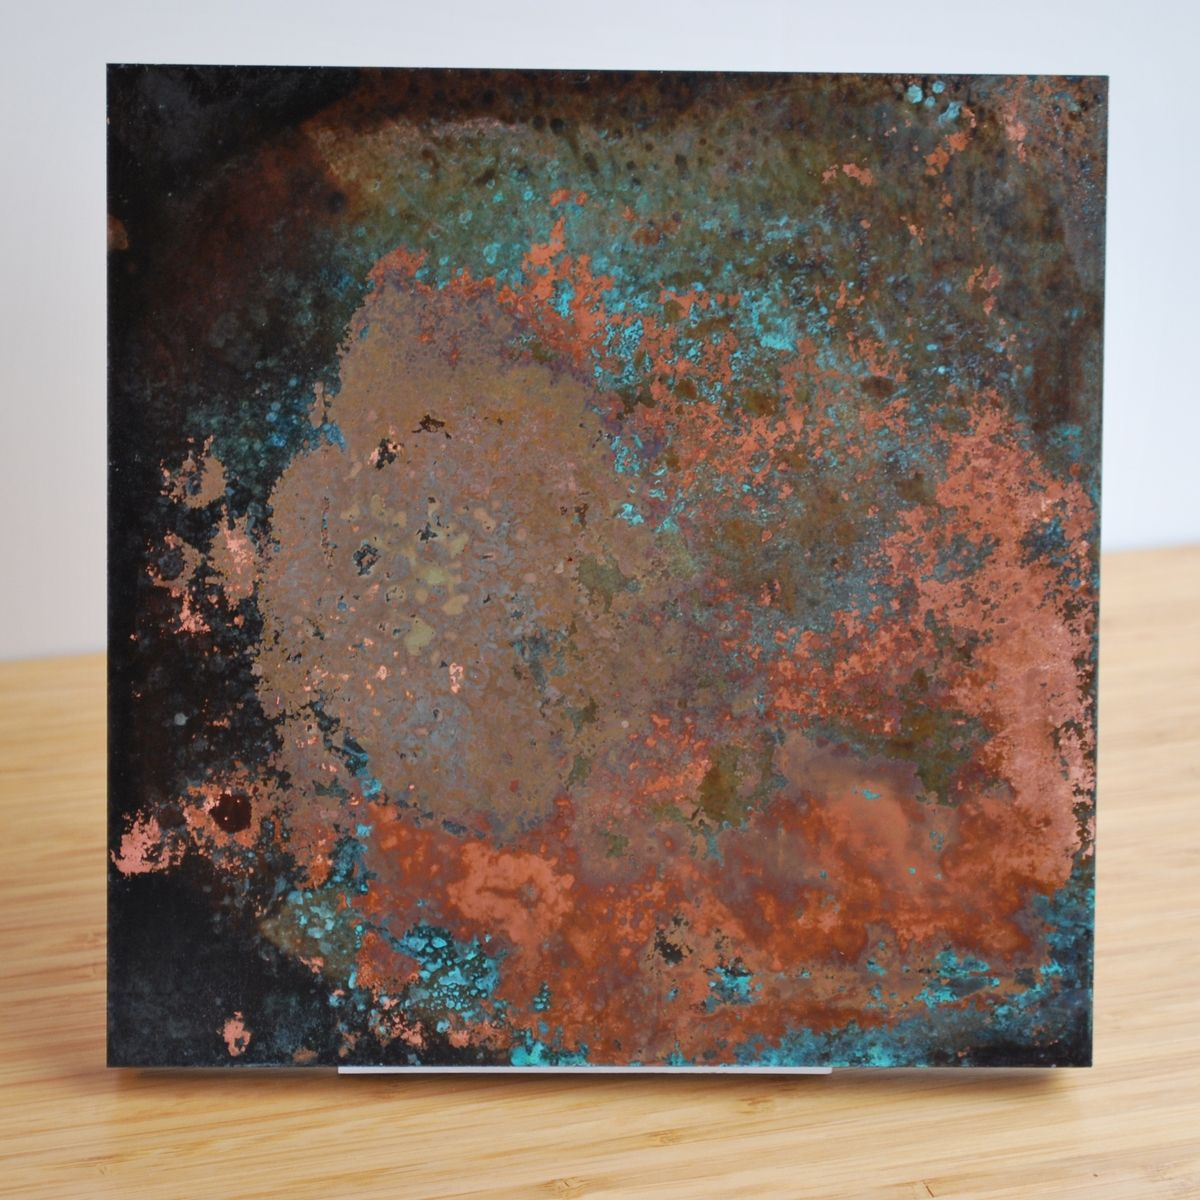 Copper Patina Wall Art (Various) & Copper Patina Wall Art (Various) | Products I Love | Pinterest ...